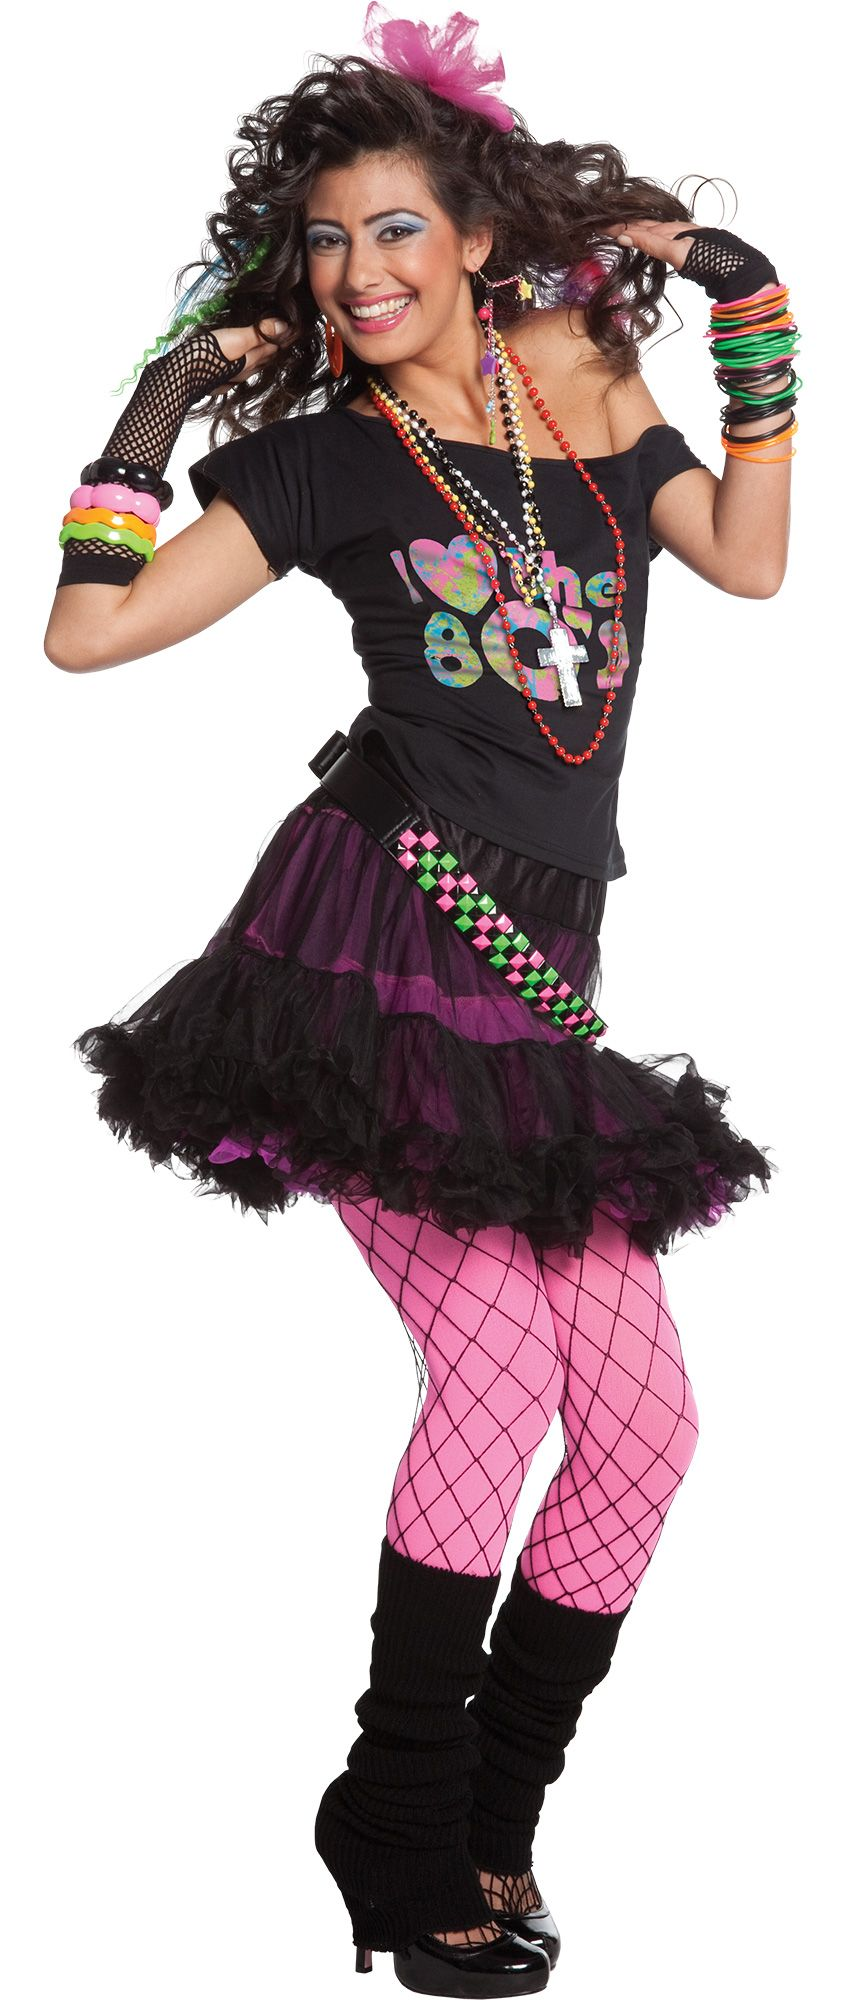 Women's 80s Valley Girl Costume Accessories - Party City